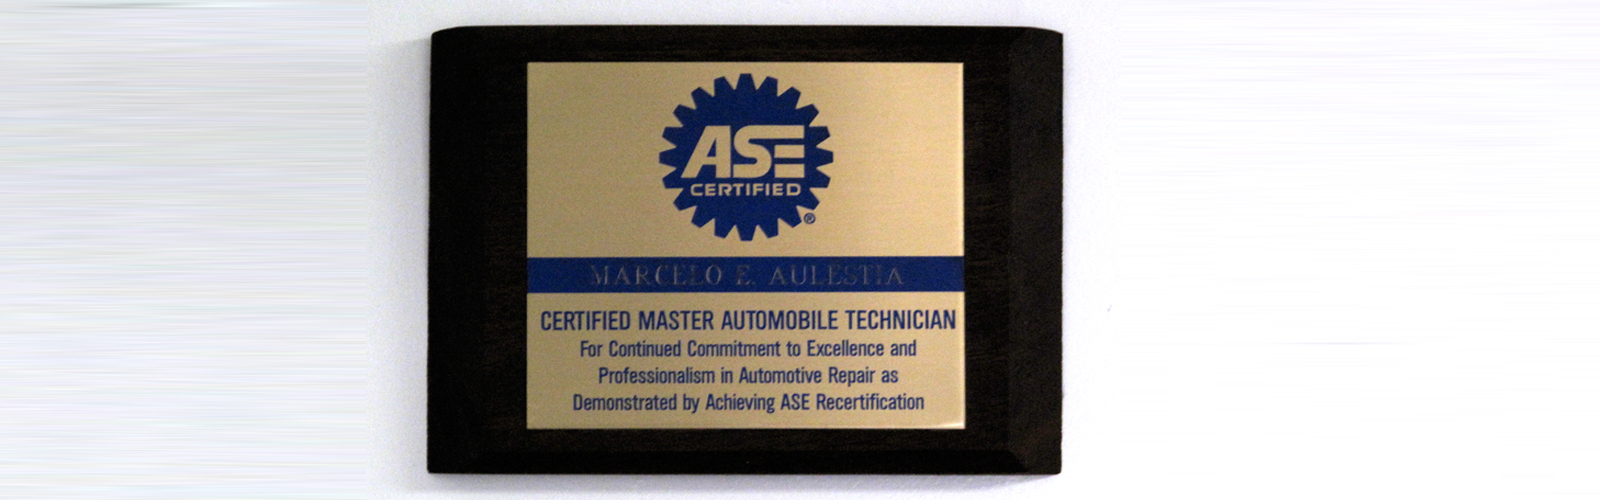 Ed's Automotive Center | ASE Certified